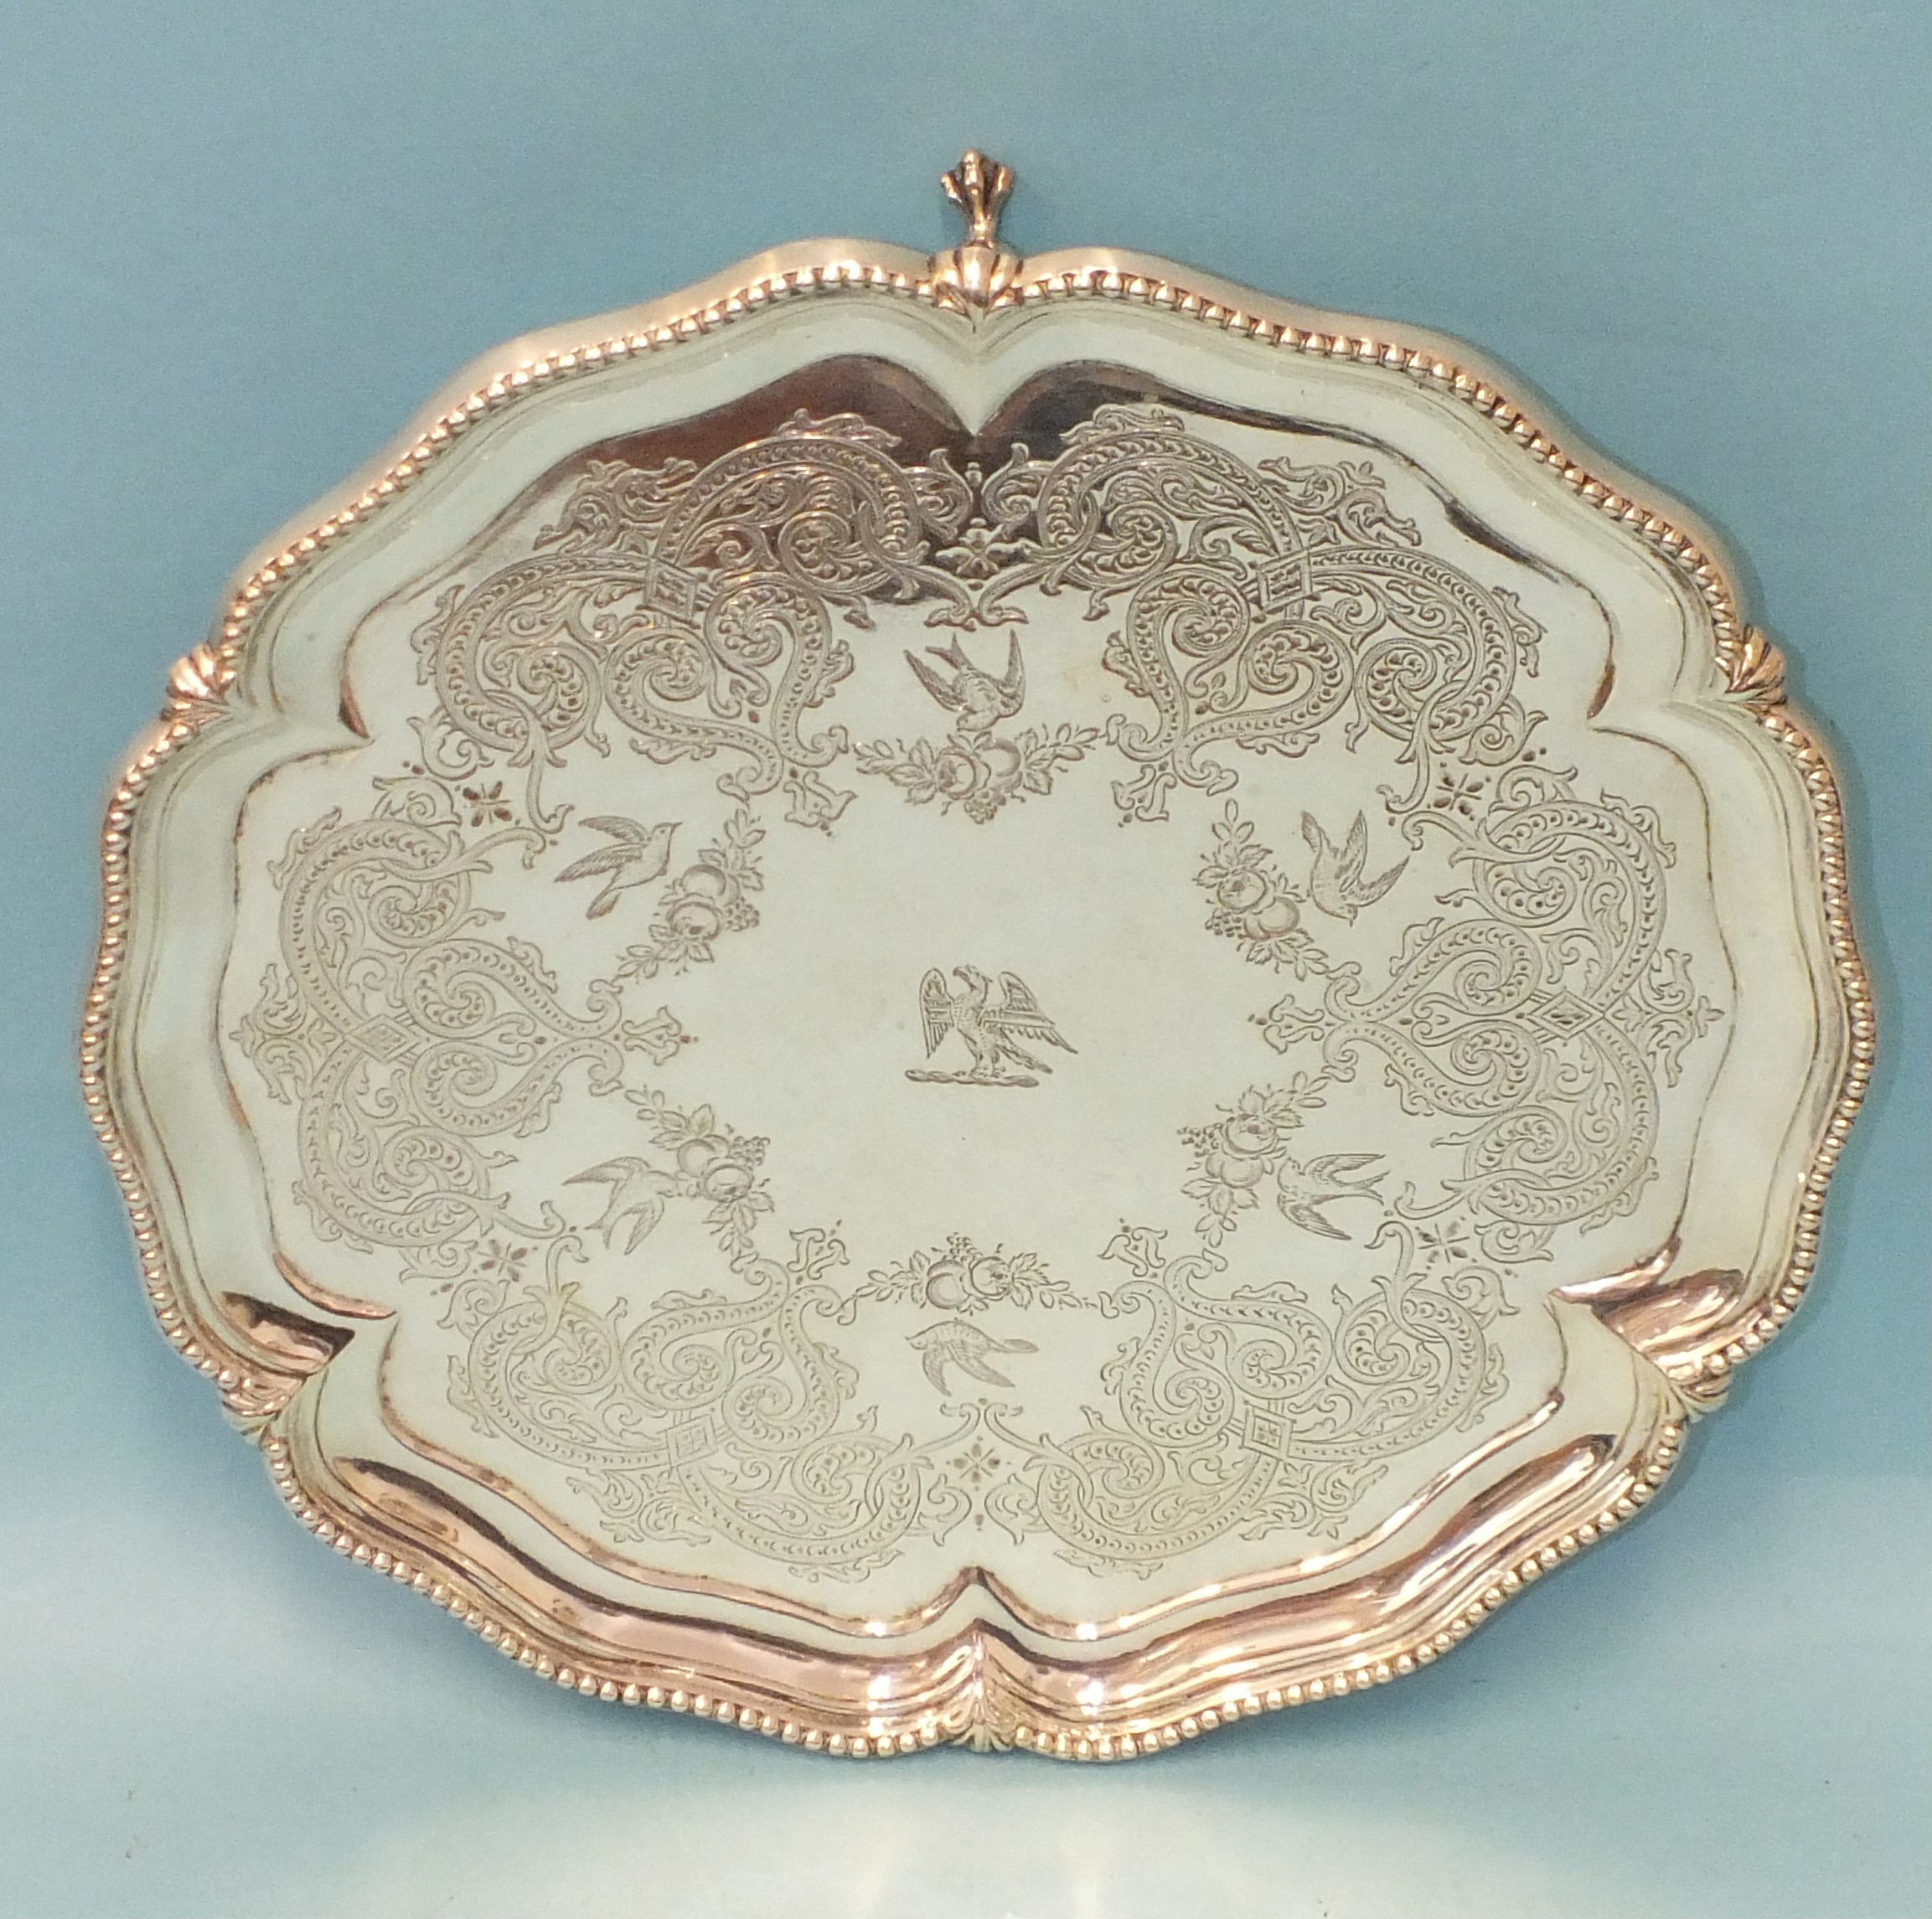 A Victorian silver salver of shaped circular form, with beaded rim and engraved decoration, raised